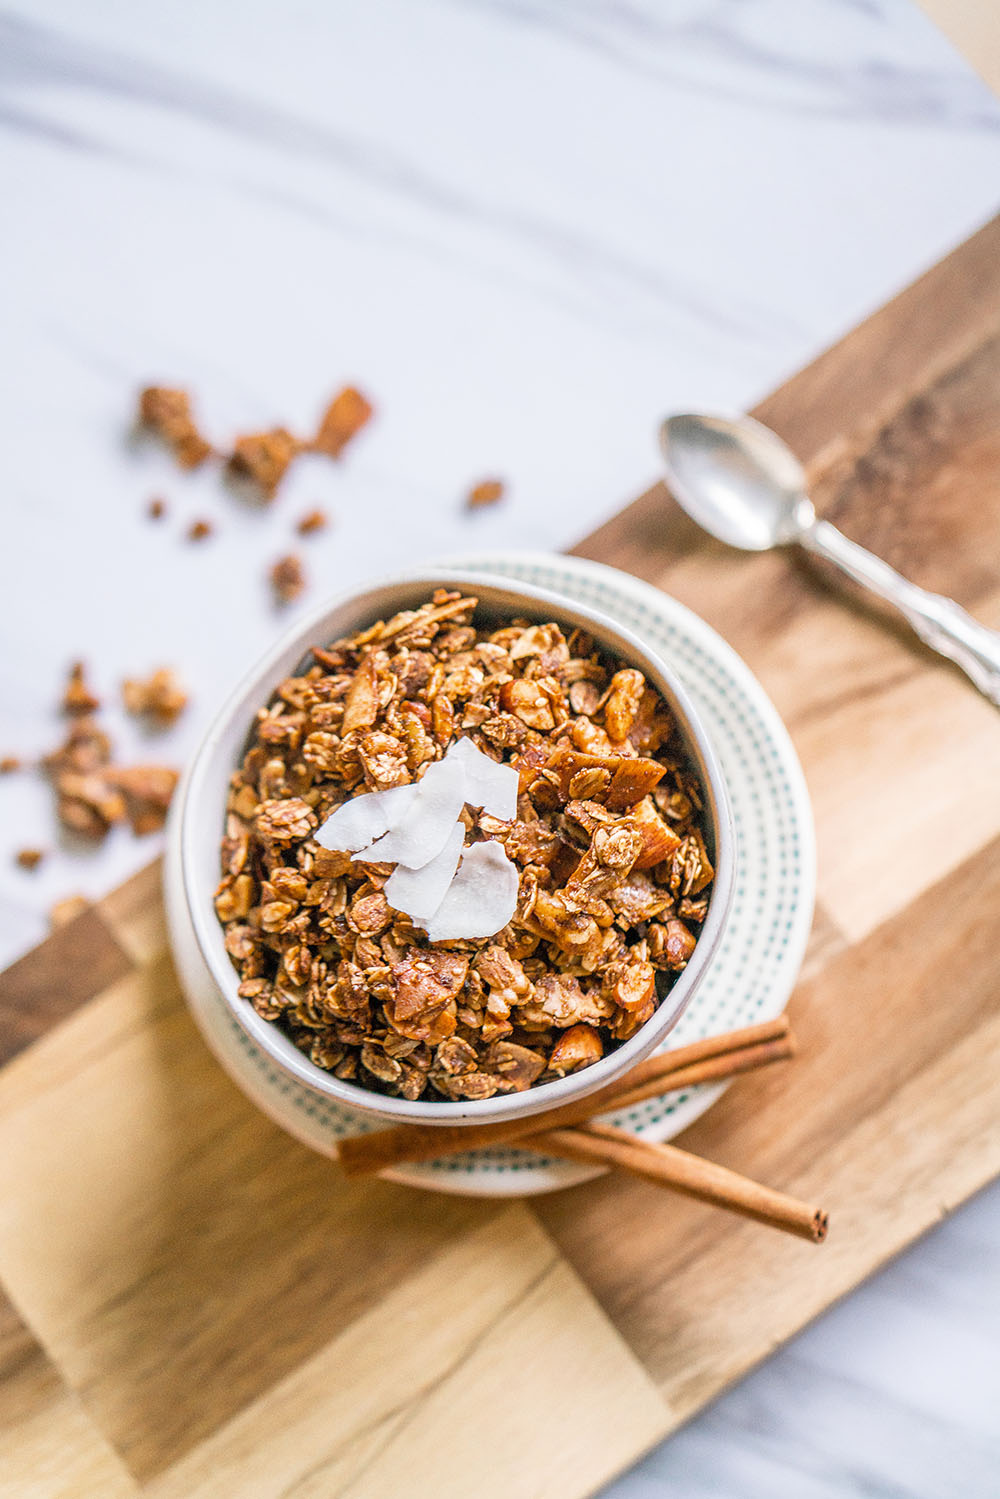 This healthy homemade granola is full of natural nuts and grains that are tasty and good for you!